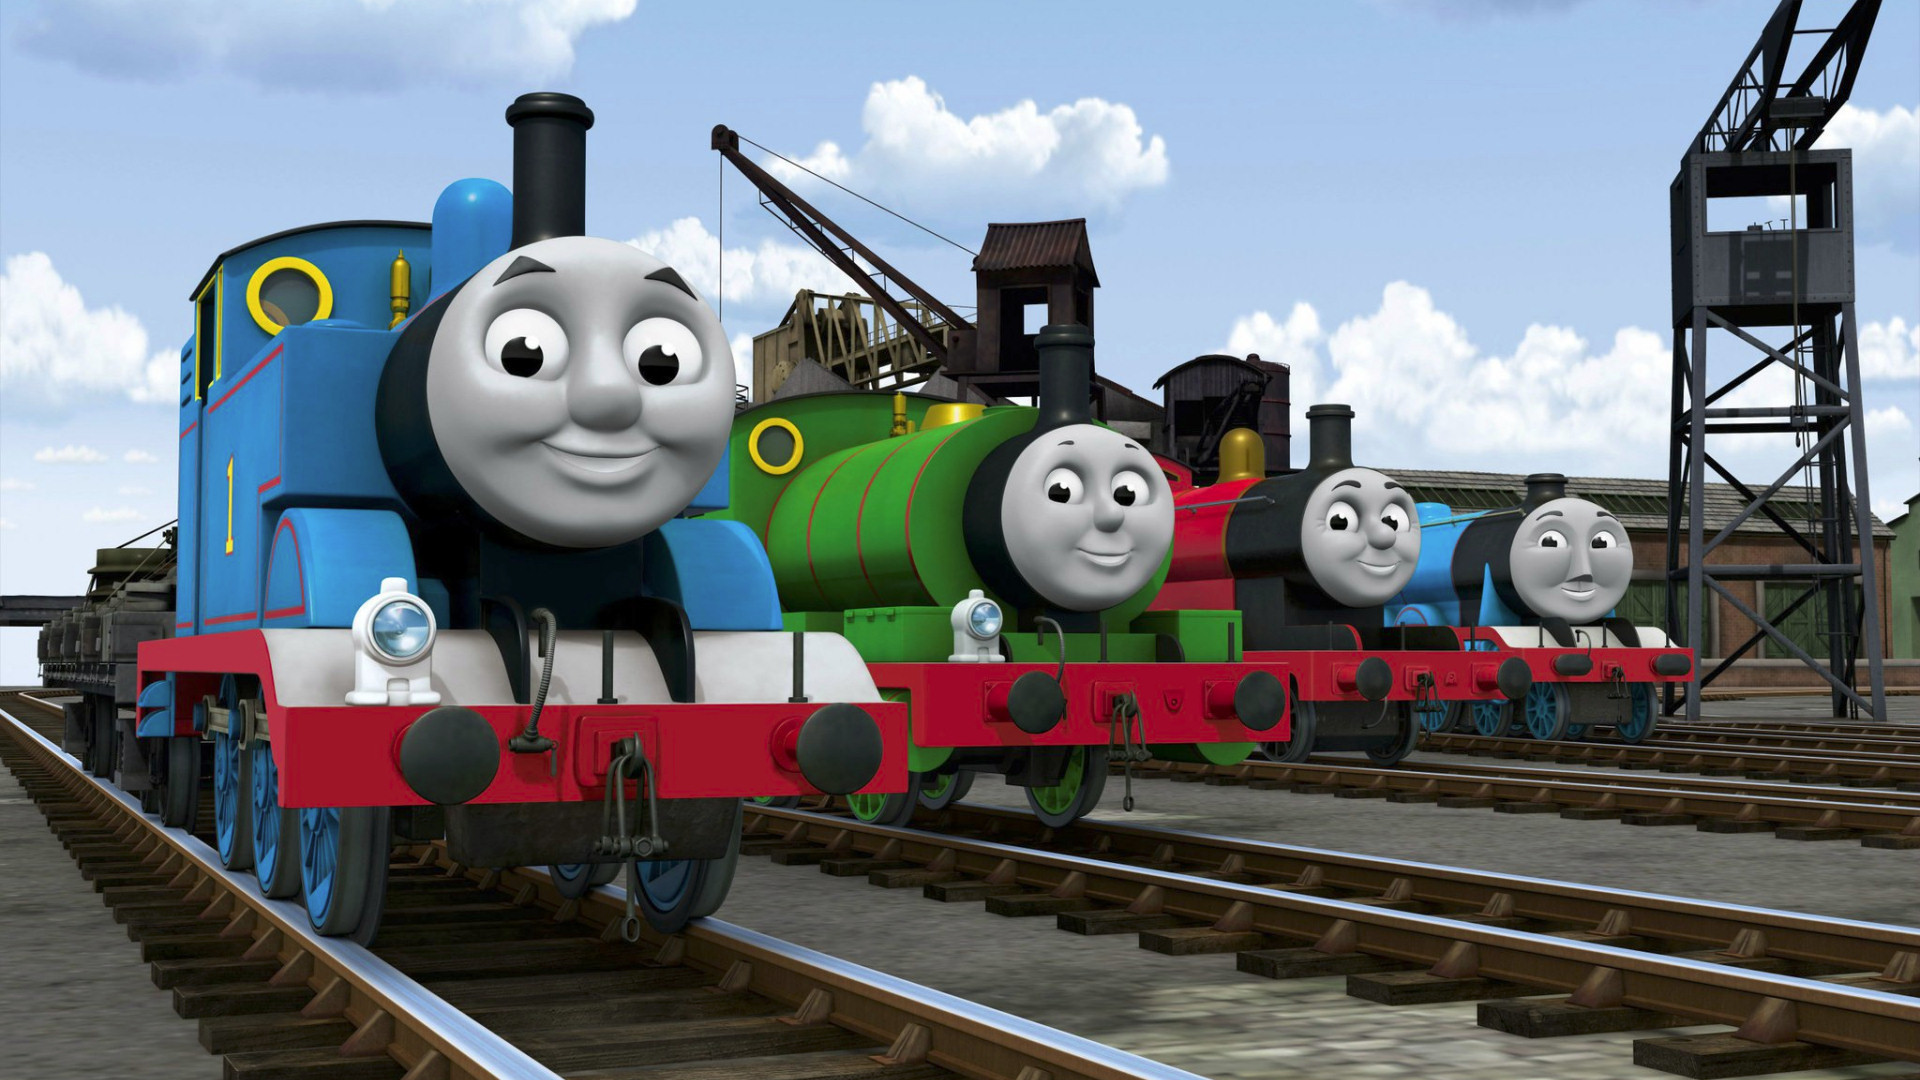 Thomas And Friends You Can See And Find A Picture Of Thomas And . Part 38